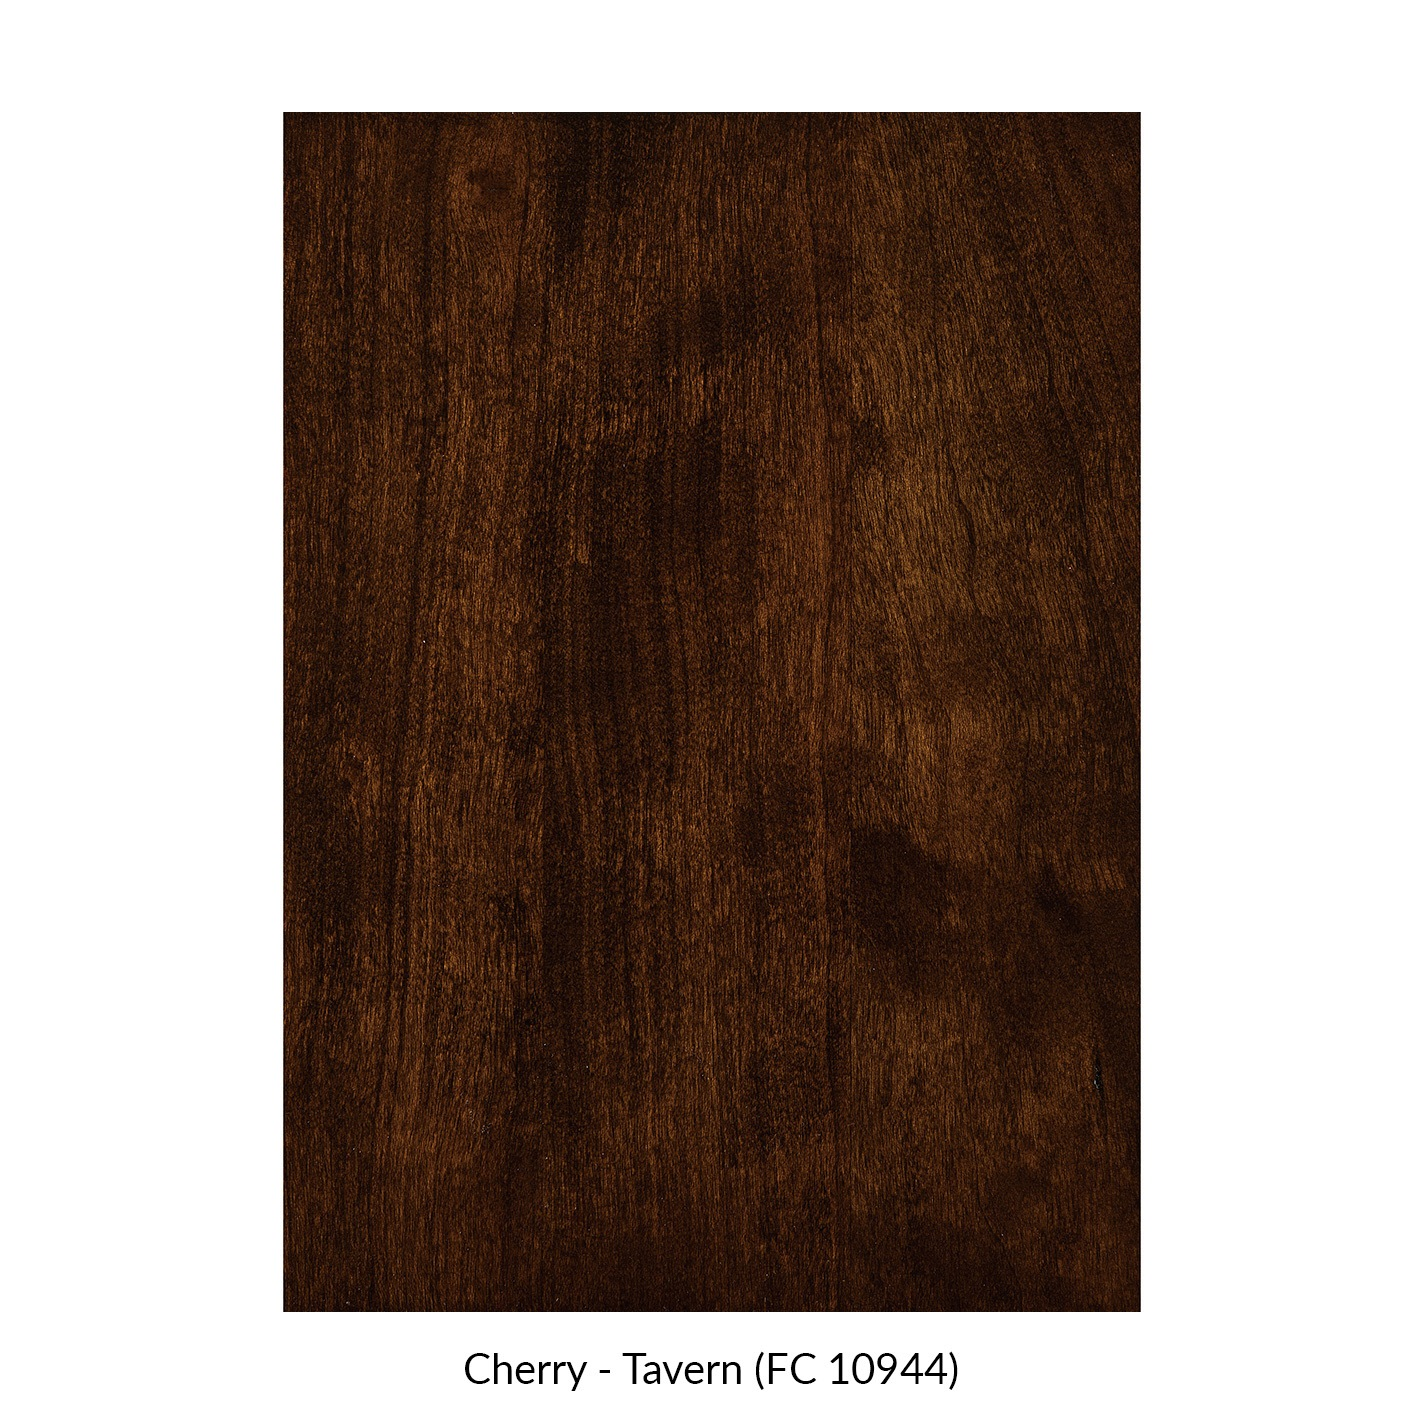 spectrum-cherry-tavern-fc-10944.jpg